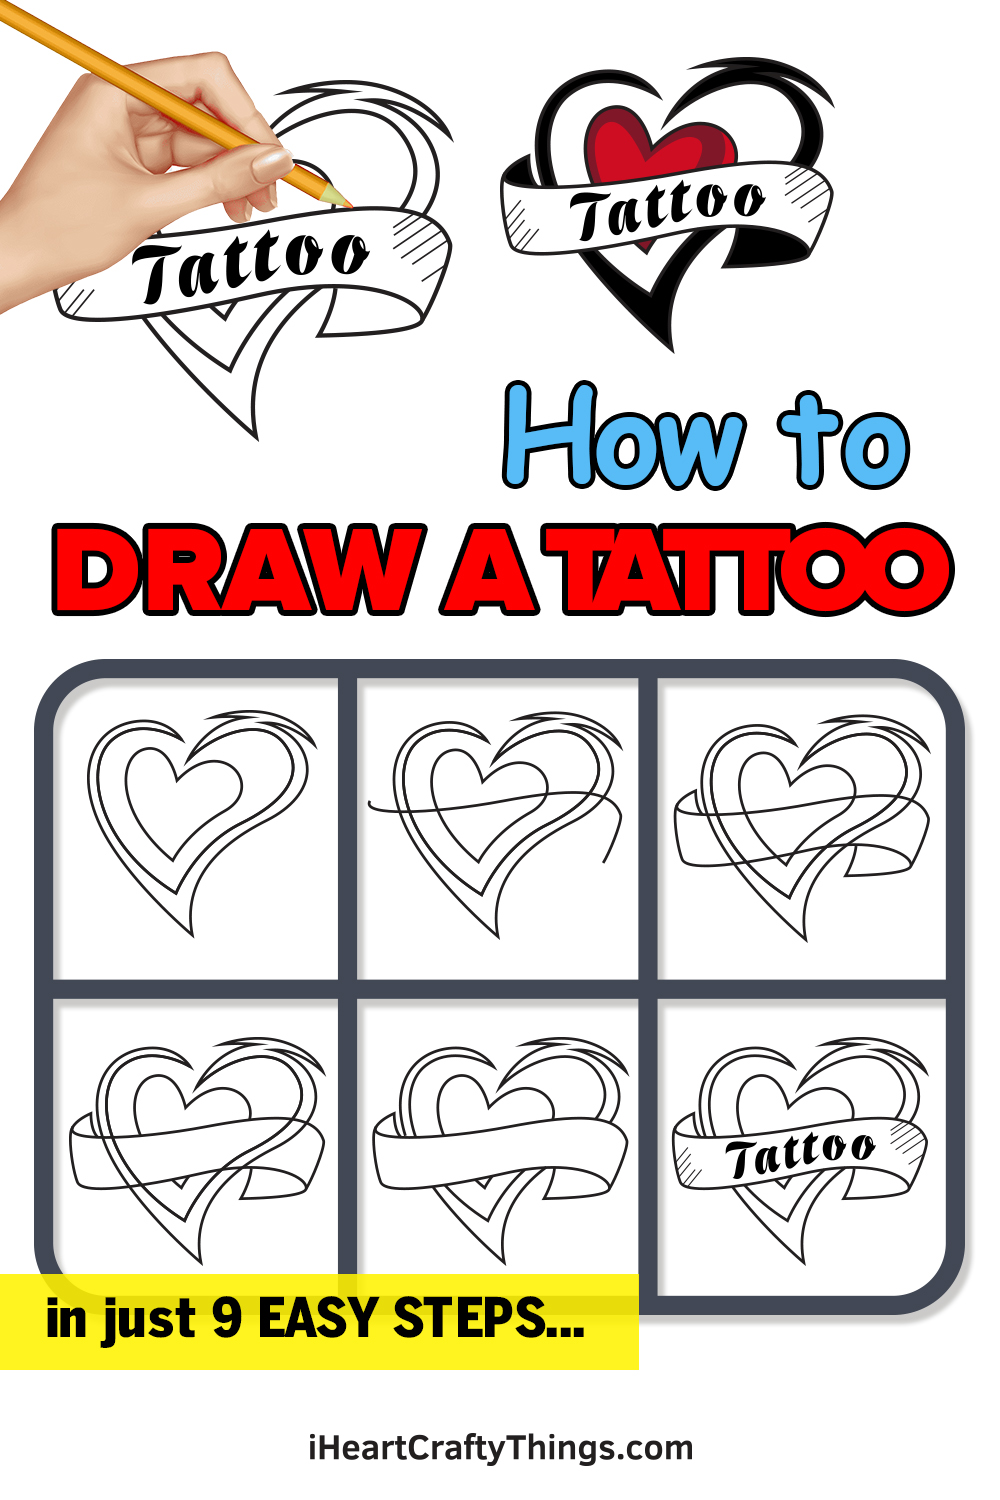 how to draw a tattoo in 9 easy steps